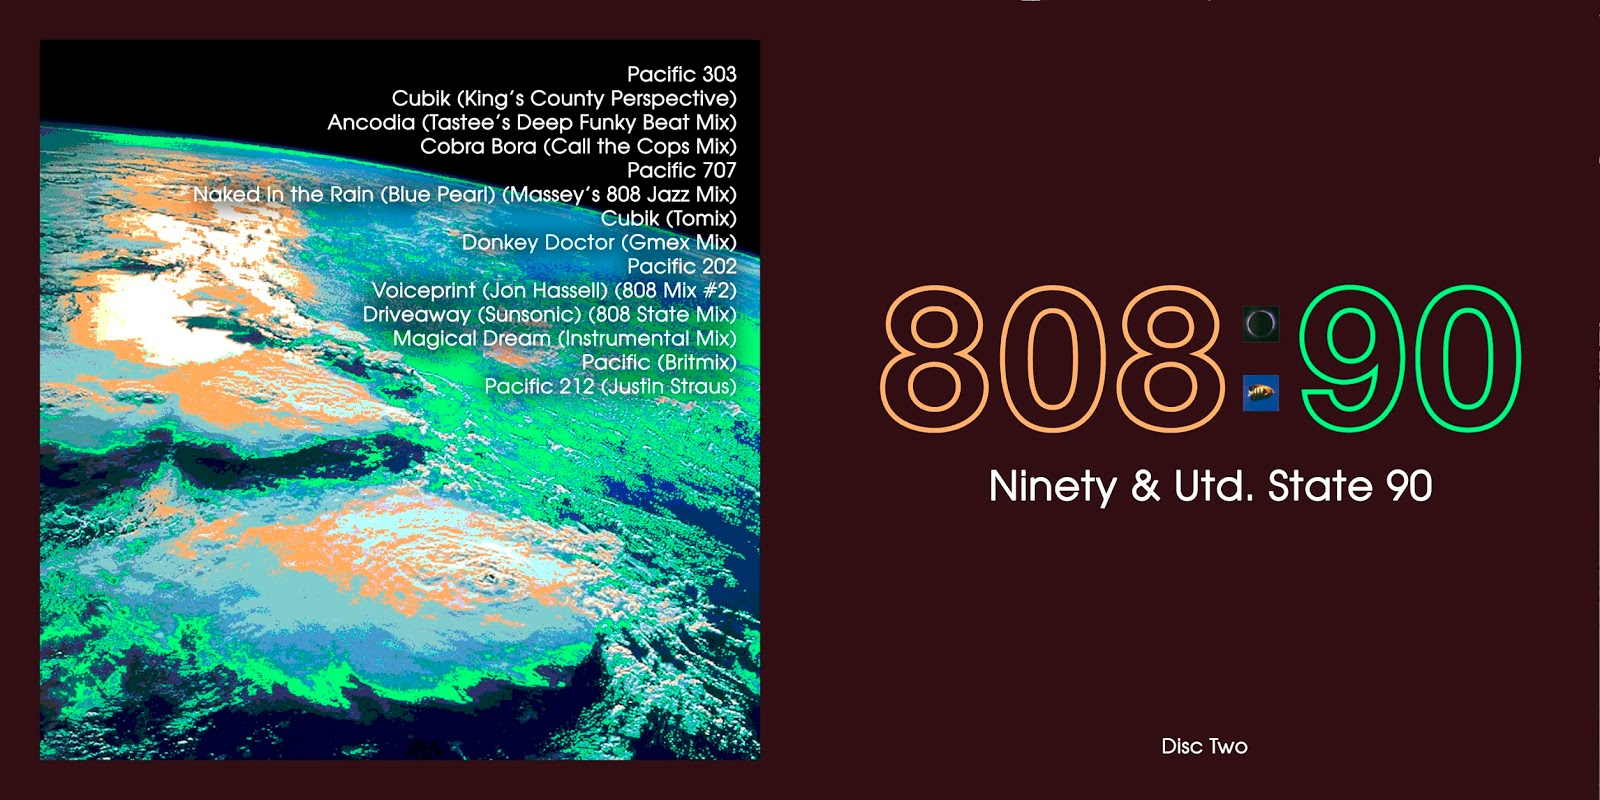 All the Air In My Lungs: 808 State - Ninety & Utd  State 90